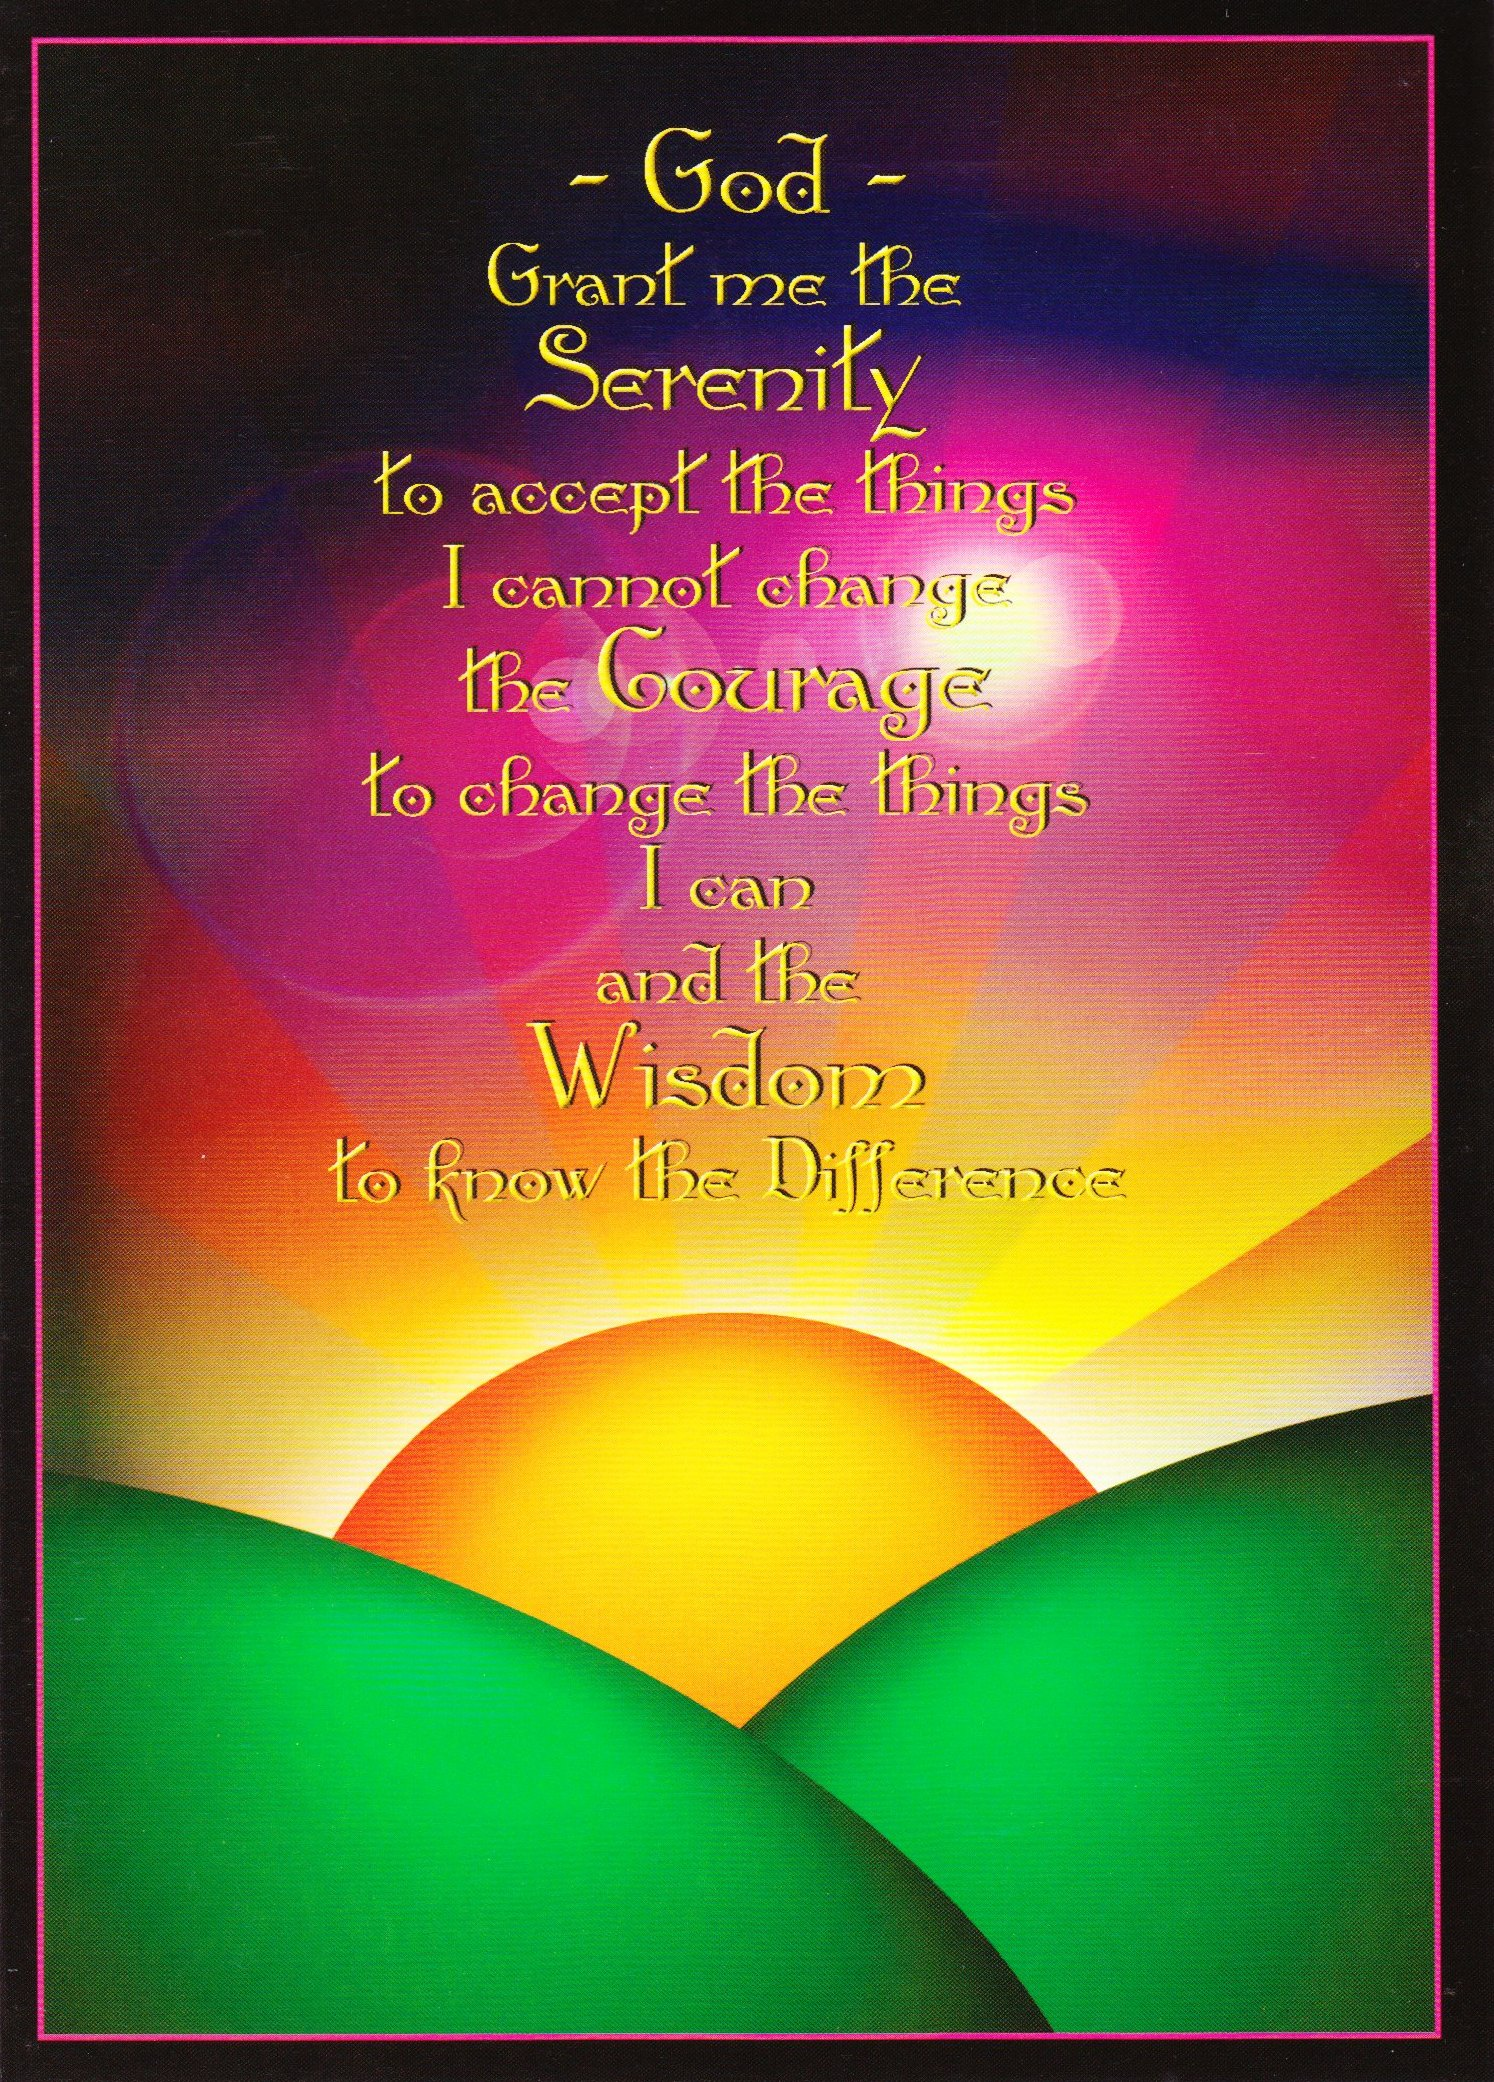 Serenity prayer card 2 haz2515 395 12 step program books serenity prayer card 2 kristyandbryce Image collections